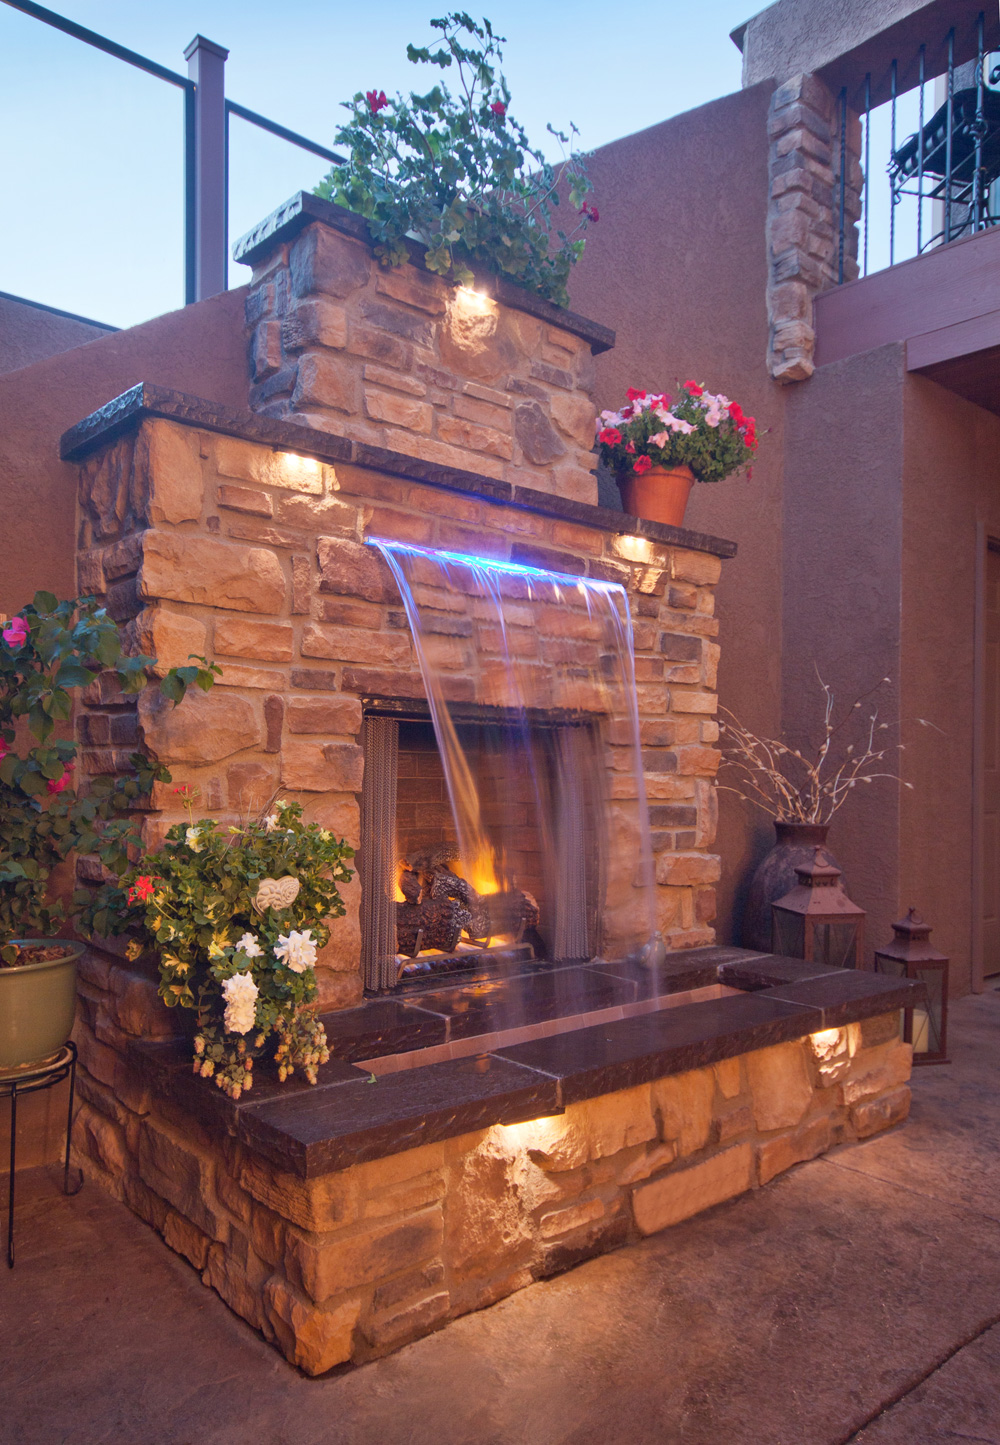 Landscaping in Colorado Springs, CO